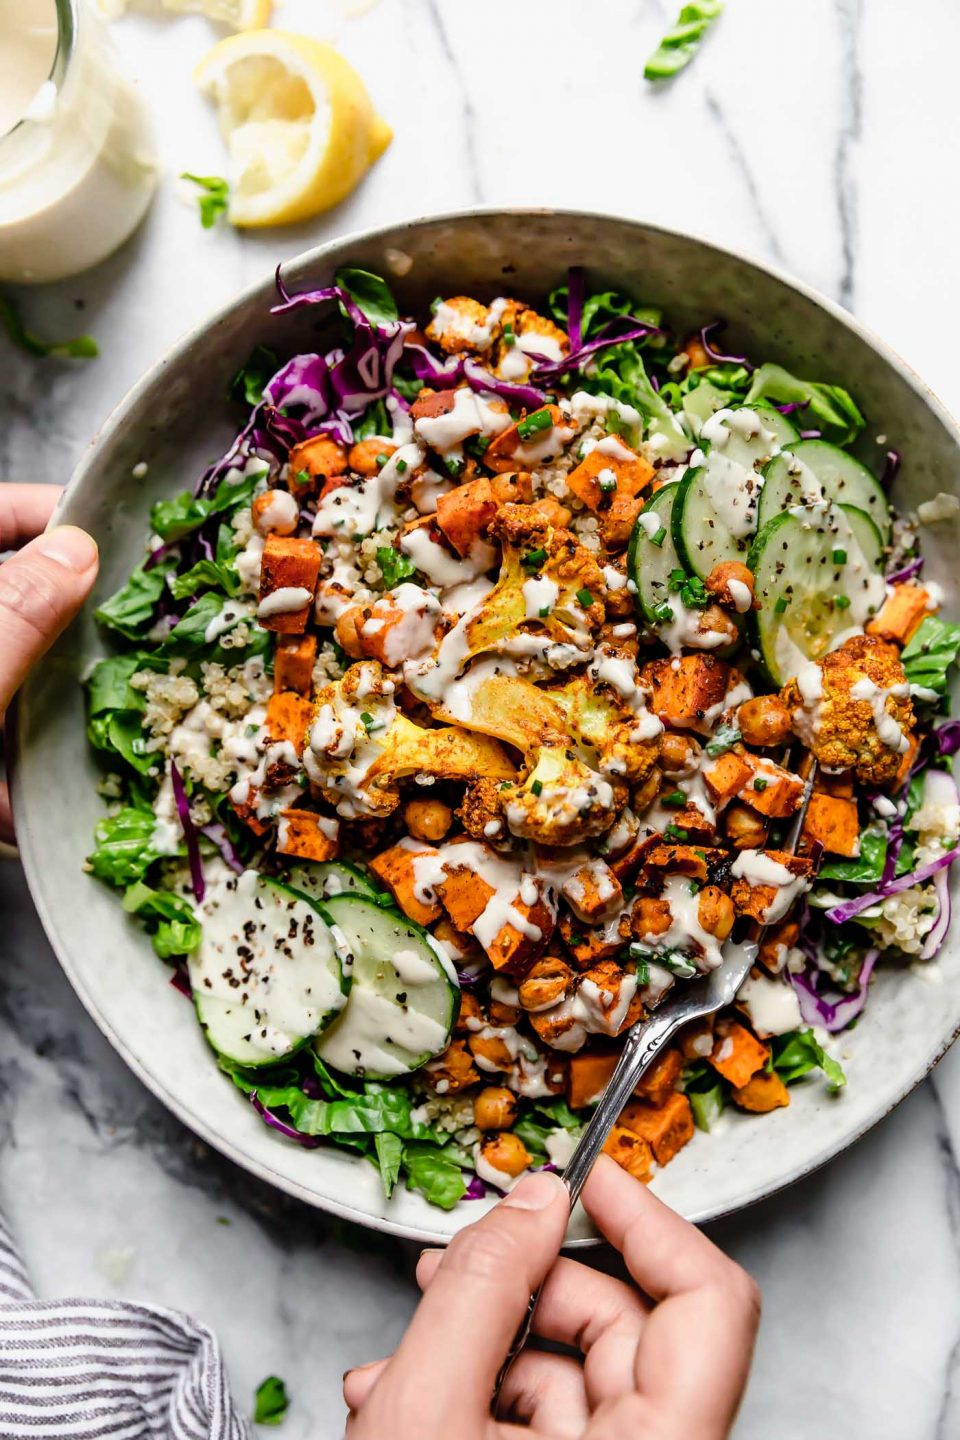 Roasted veggie & chickpea shawarma served in a bowl over greens & quinoa, drizzled with lemon tahini sauce. A woman's hands are reaching in from the left, holding a fork in the bowl.